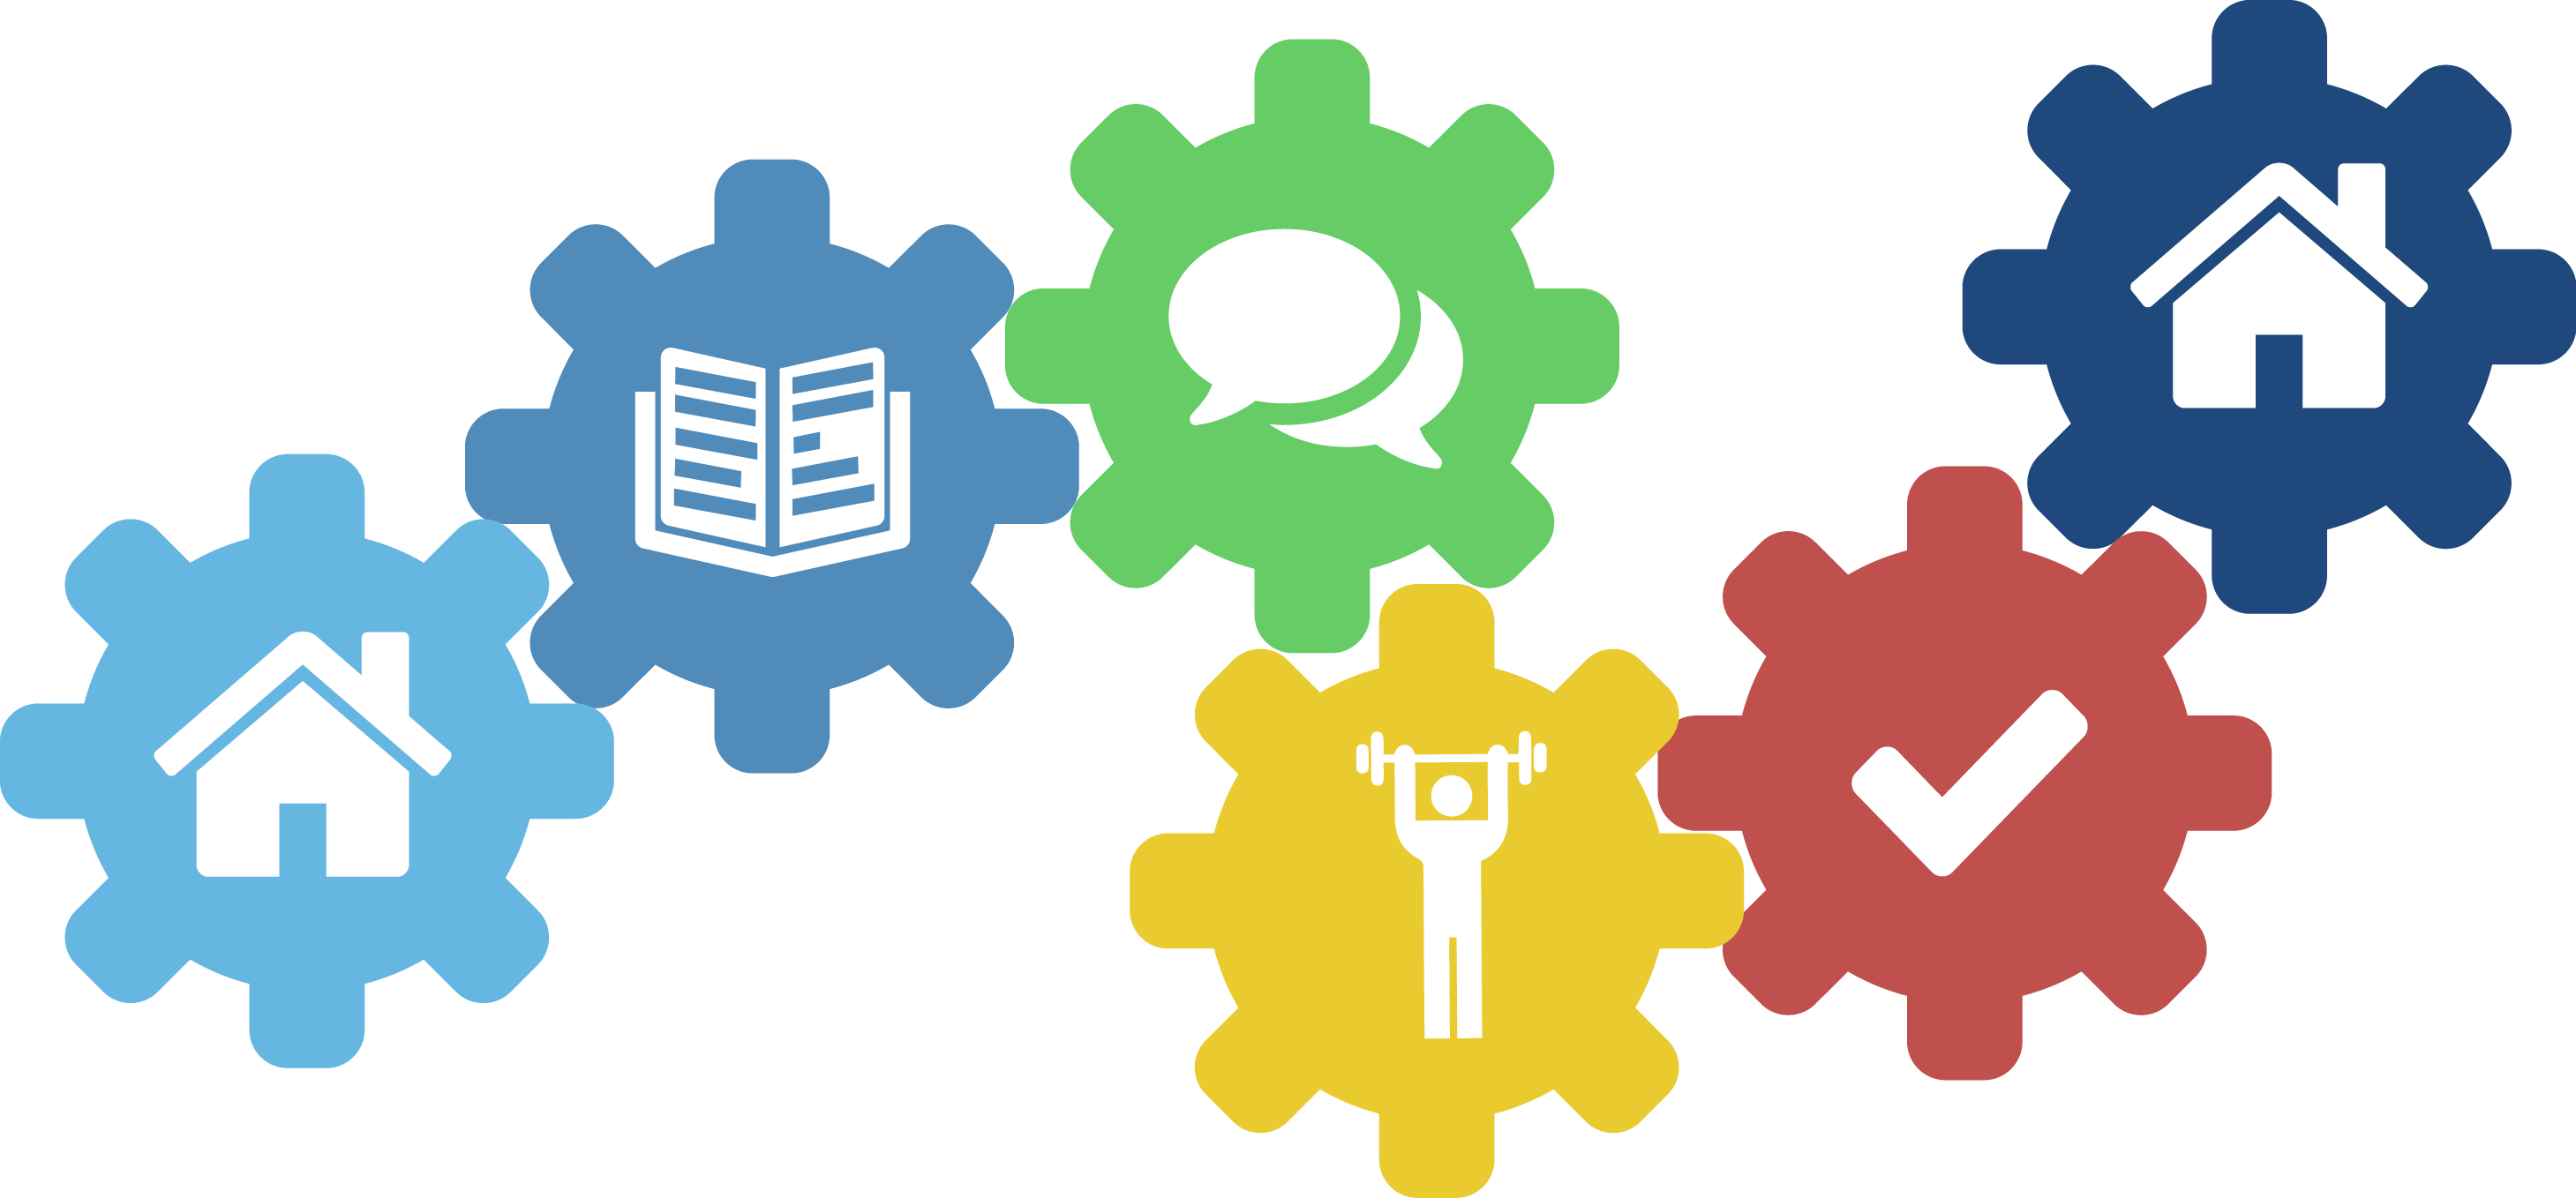 Teaching materials for retention. Knowledge clipart schema